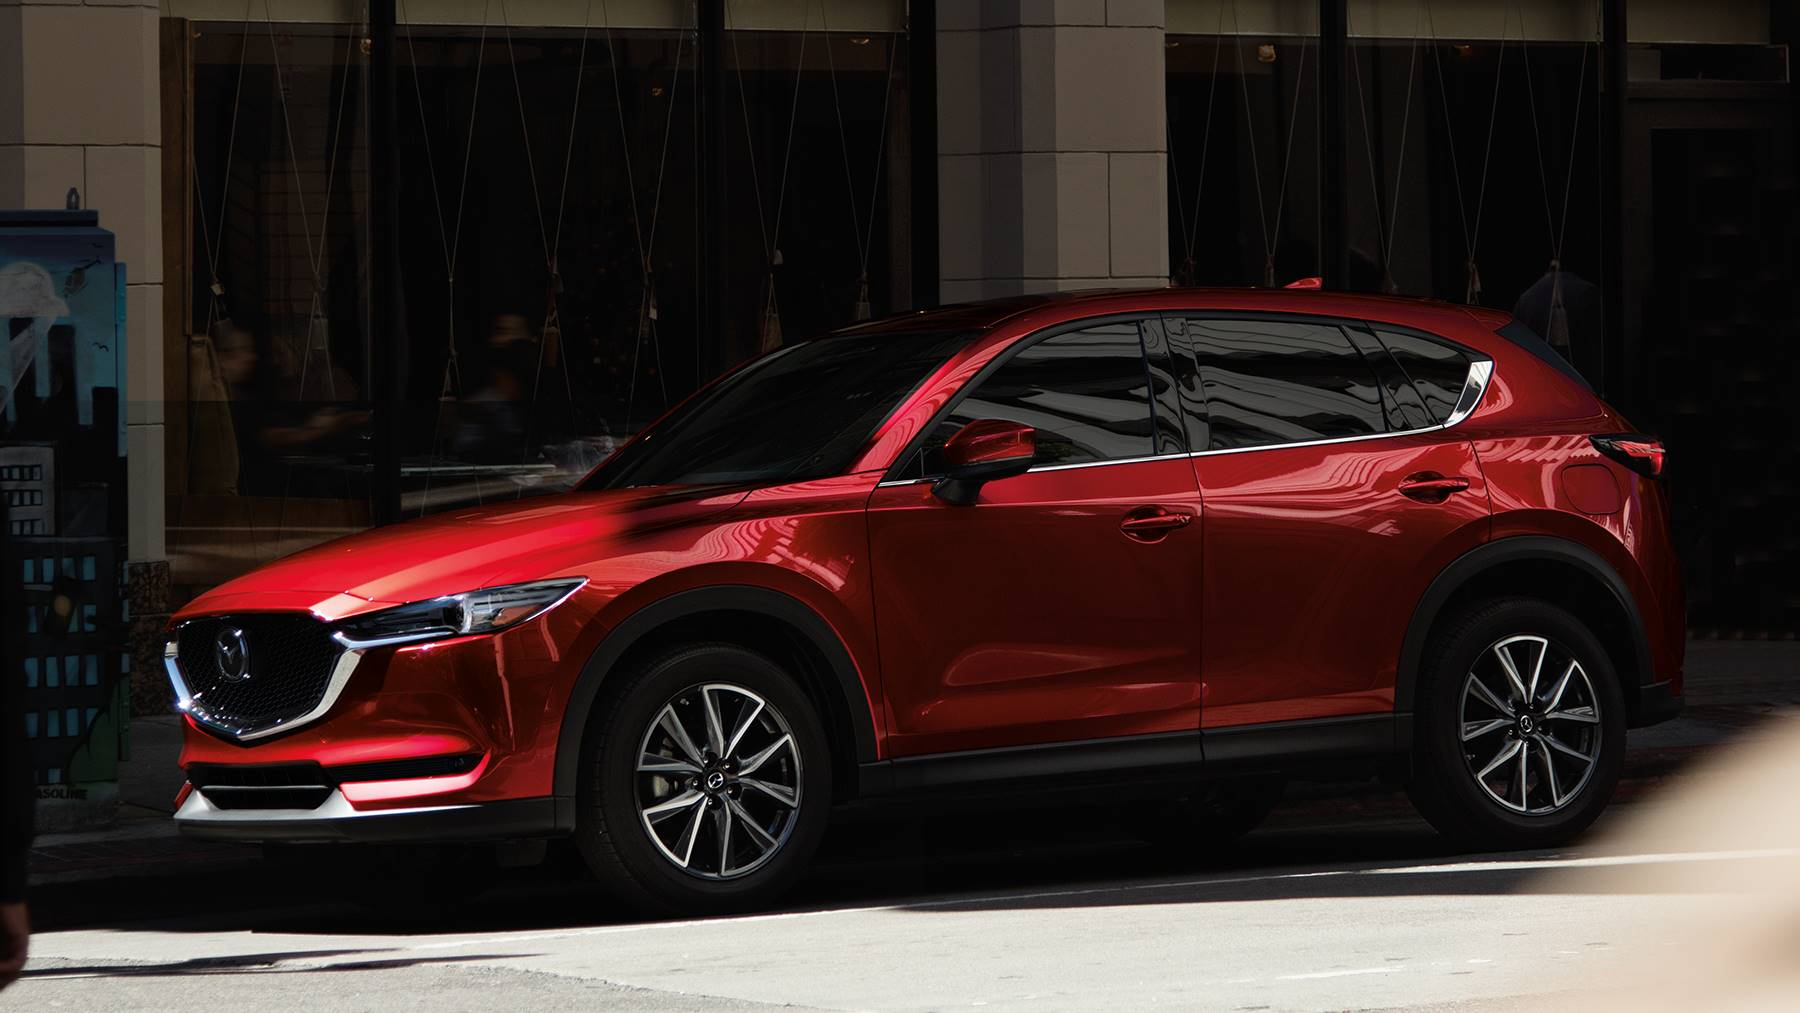 2018 mazda cx 5 for sale near rockville md gaithersburg mazda. Black Bedroom Furniture Sets. Home Design Ideas